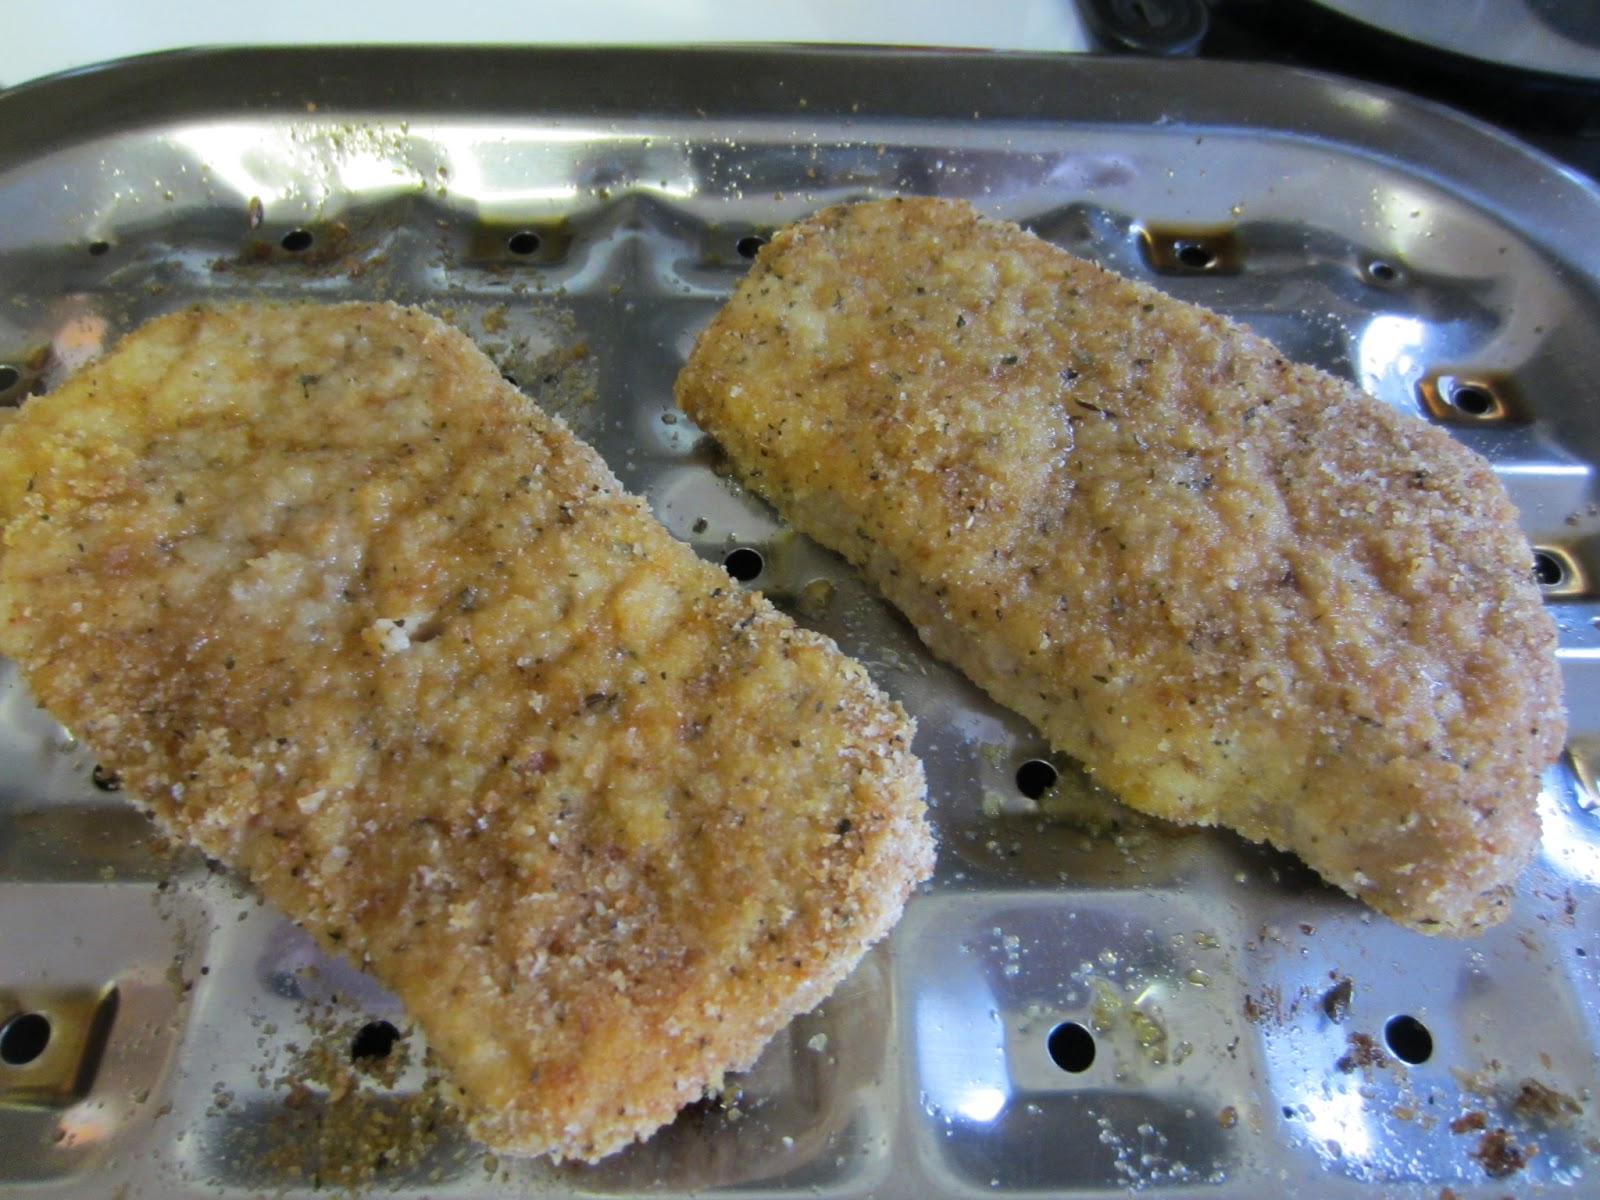 My Patchwork Quilt: OVEN FRIED PORK CHOPS